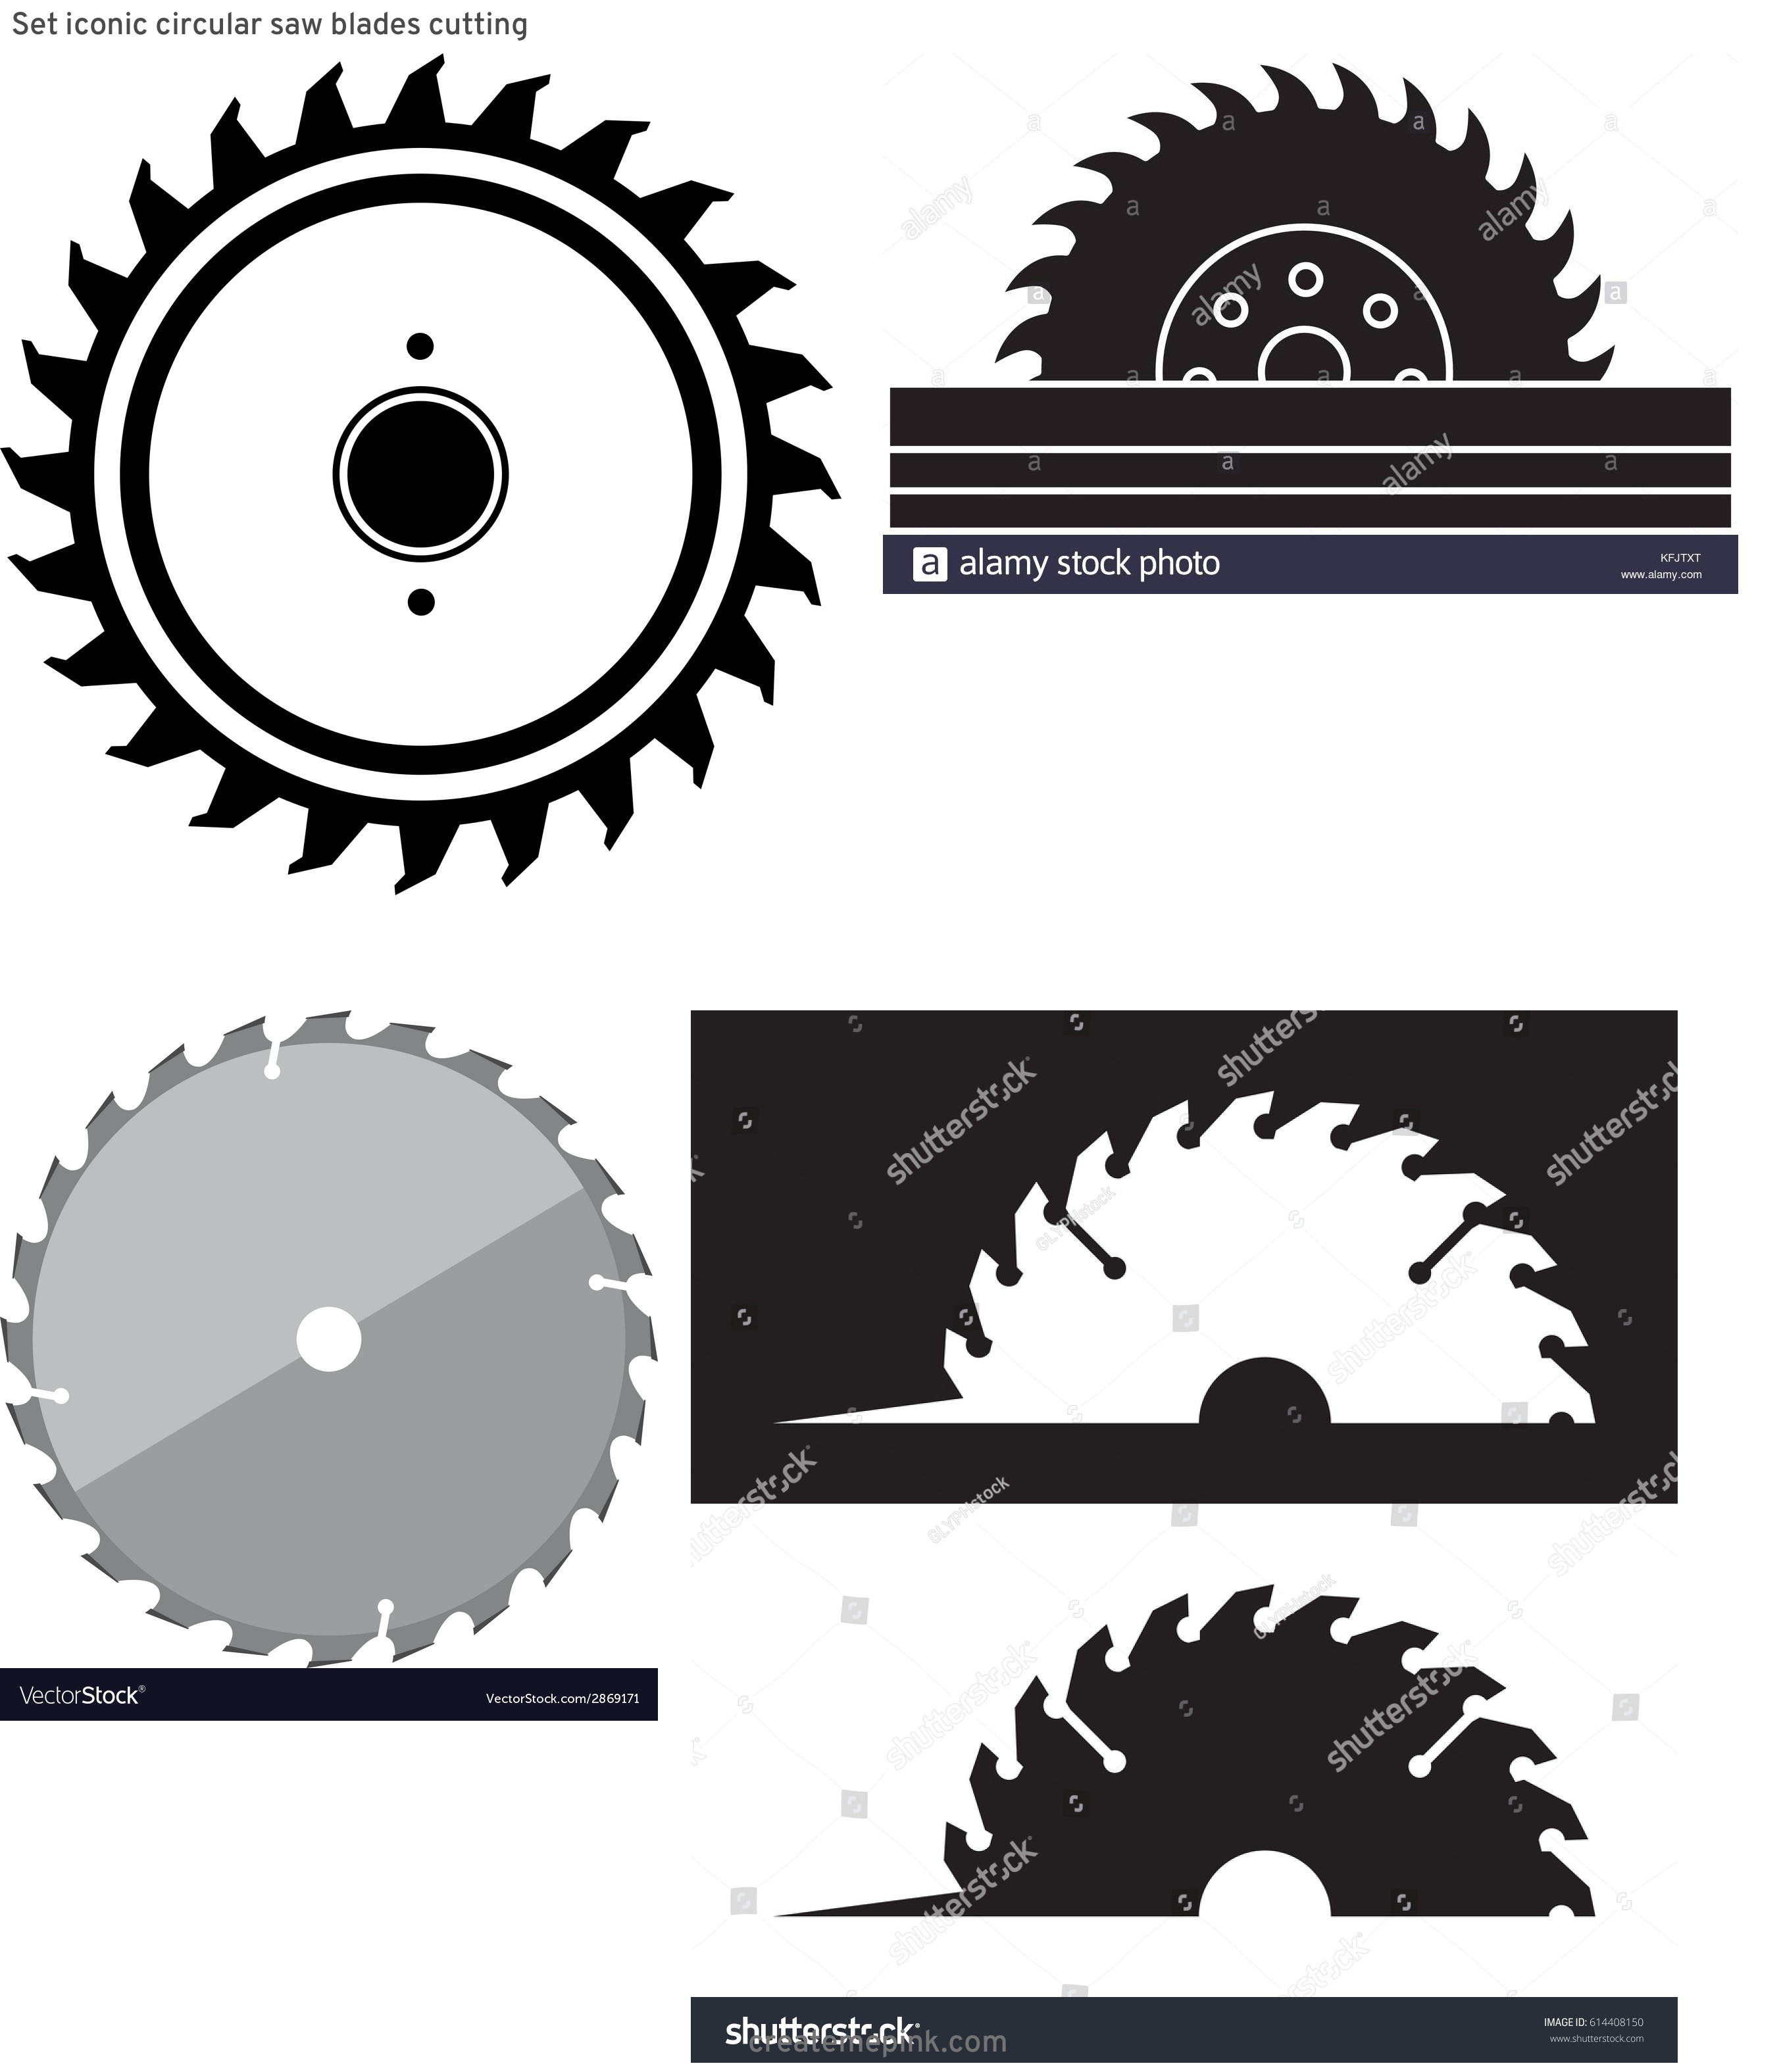 Round Saw Blade Vector: Set Iconic Circular Saw Blades Cutting